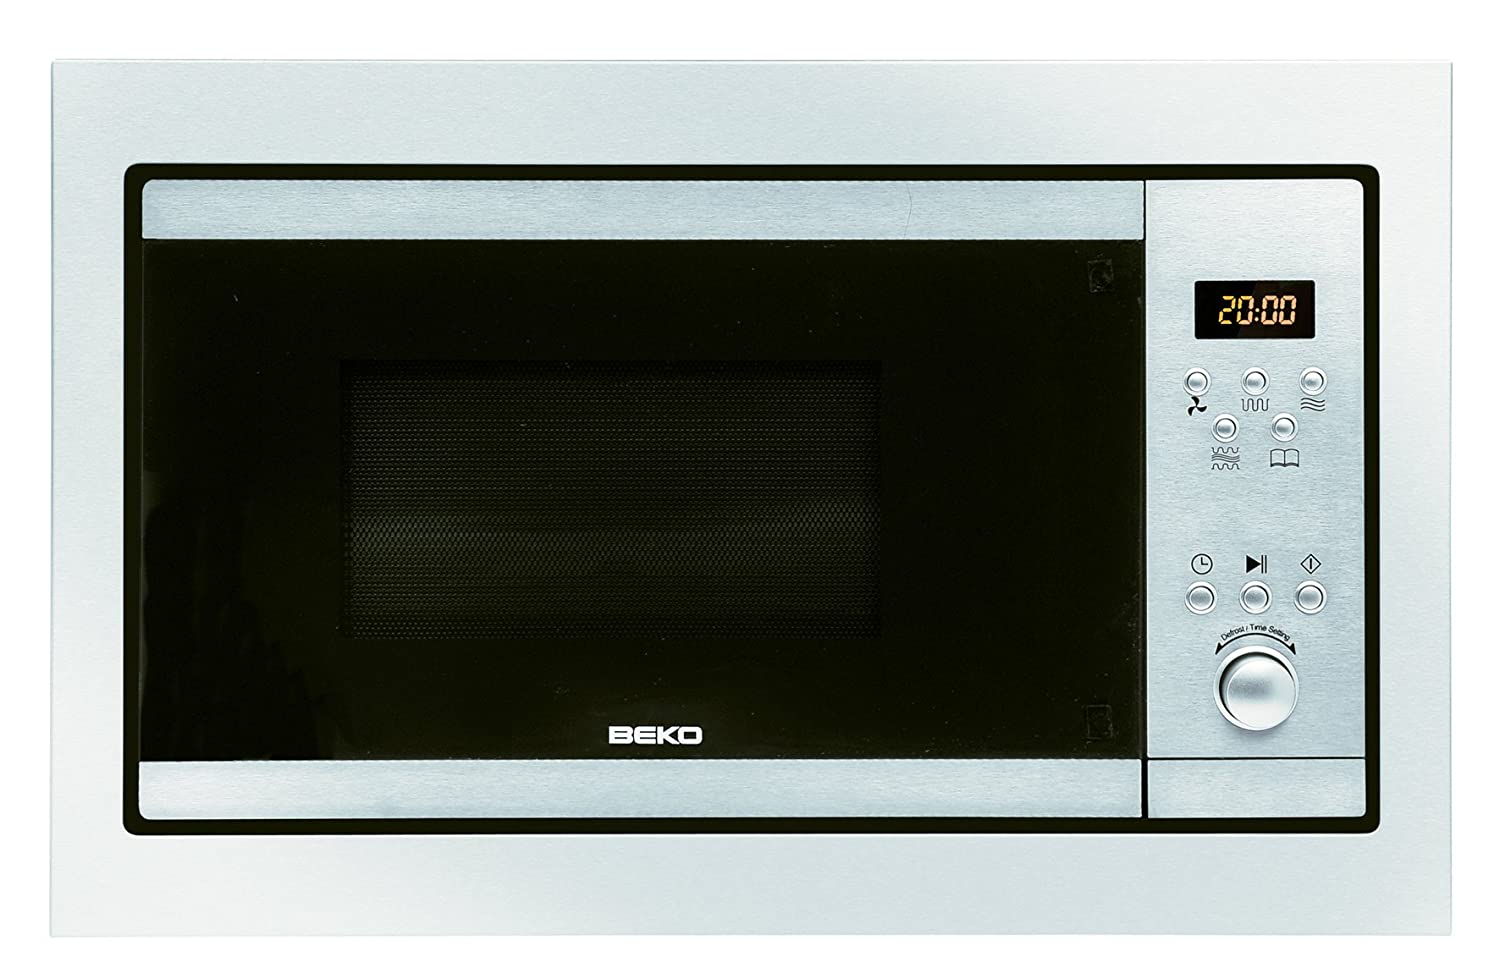 Beko MW2510X Integrado 25L 900W Acero inoxidable ...